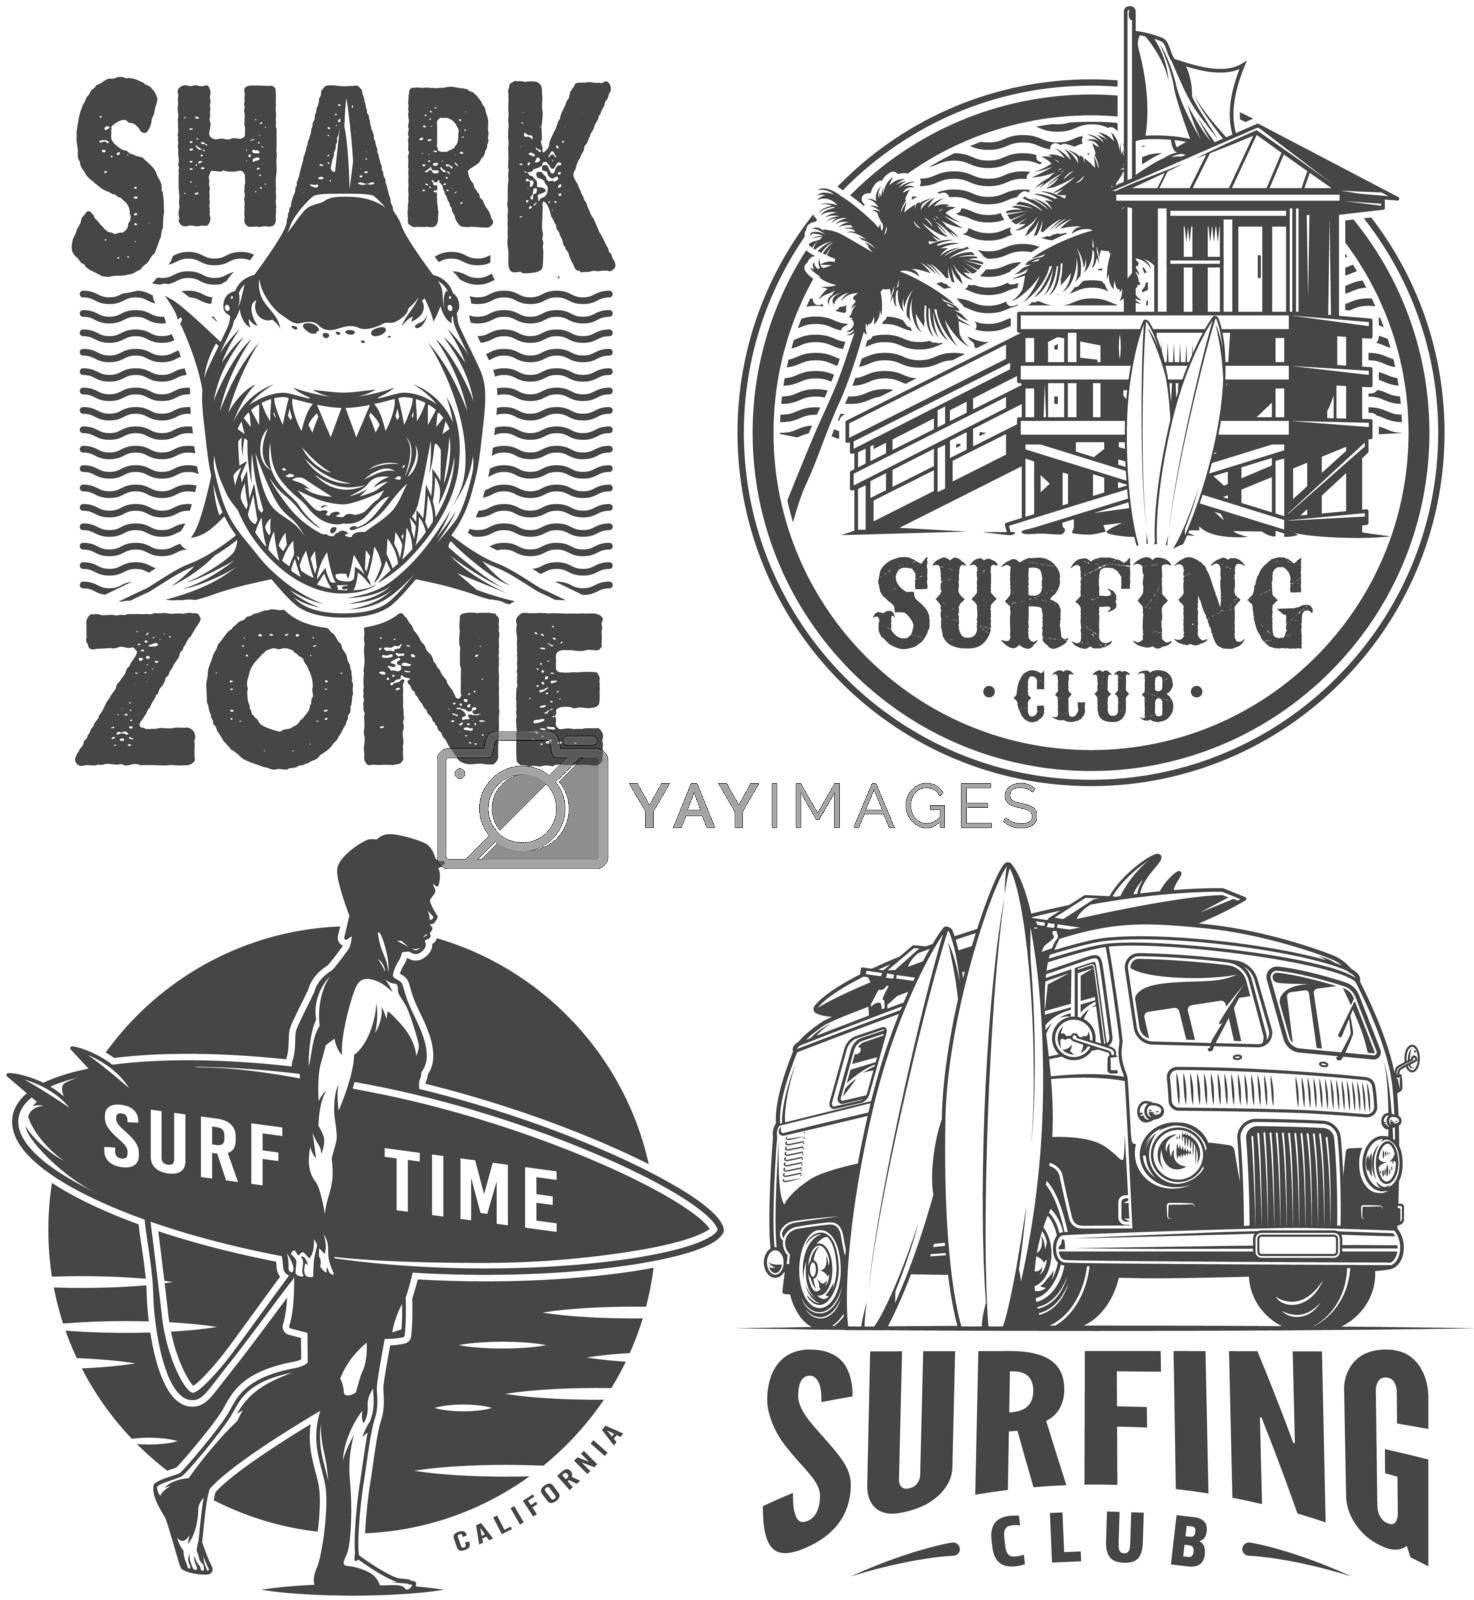 Vintage surf logos monochrome set with shark house of surfing club travel van surfer holding surfboard isolated vector illustration